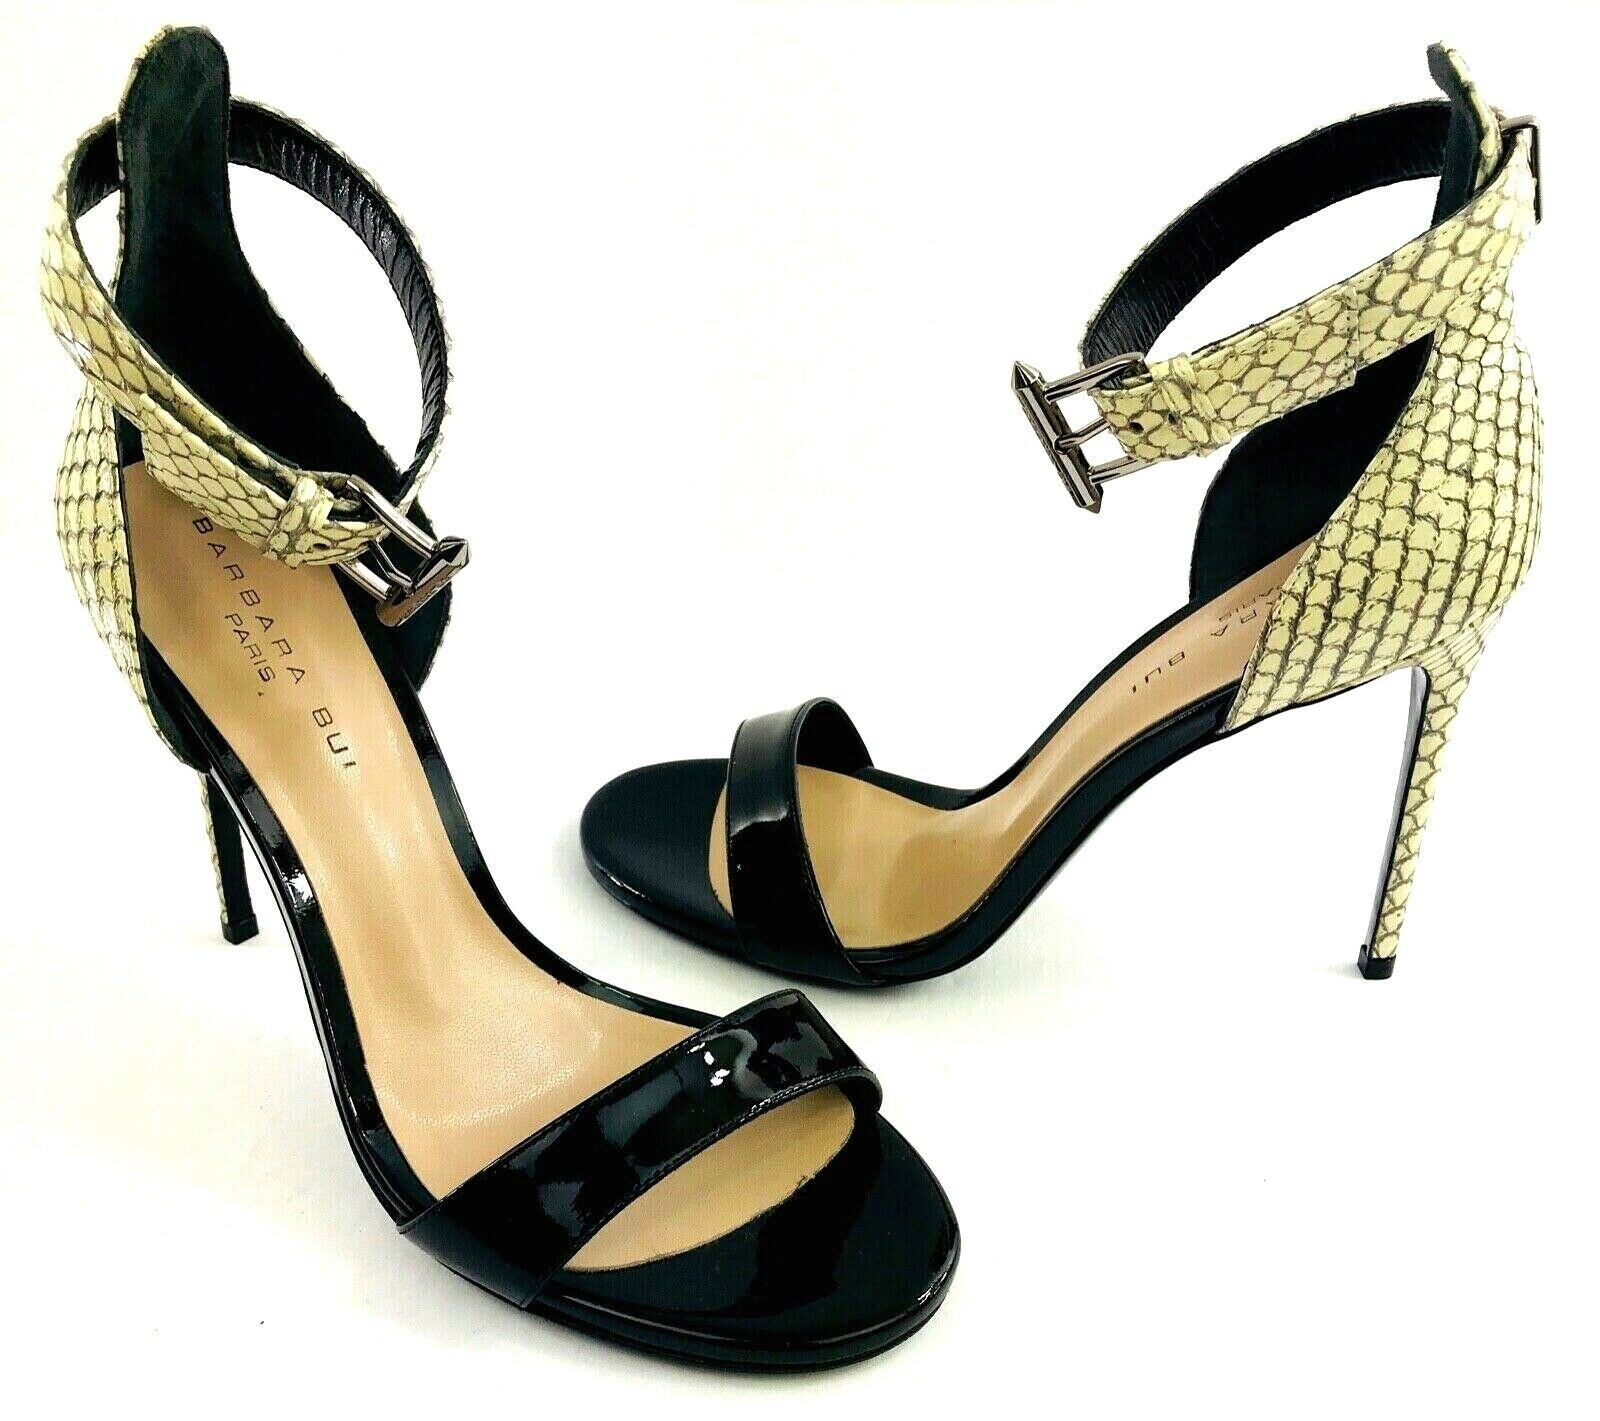 Barbara Bui Ankle Strap Sandals Snake & Patent EUR 38 US 7.5